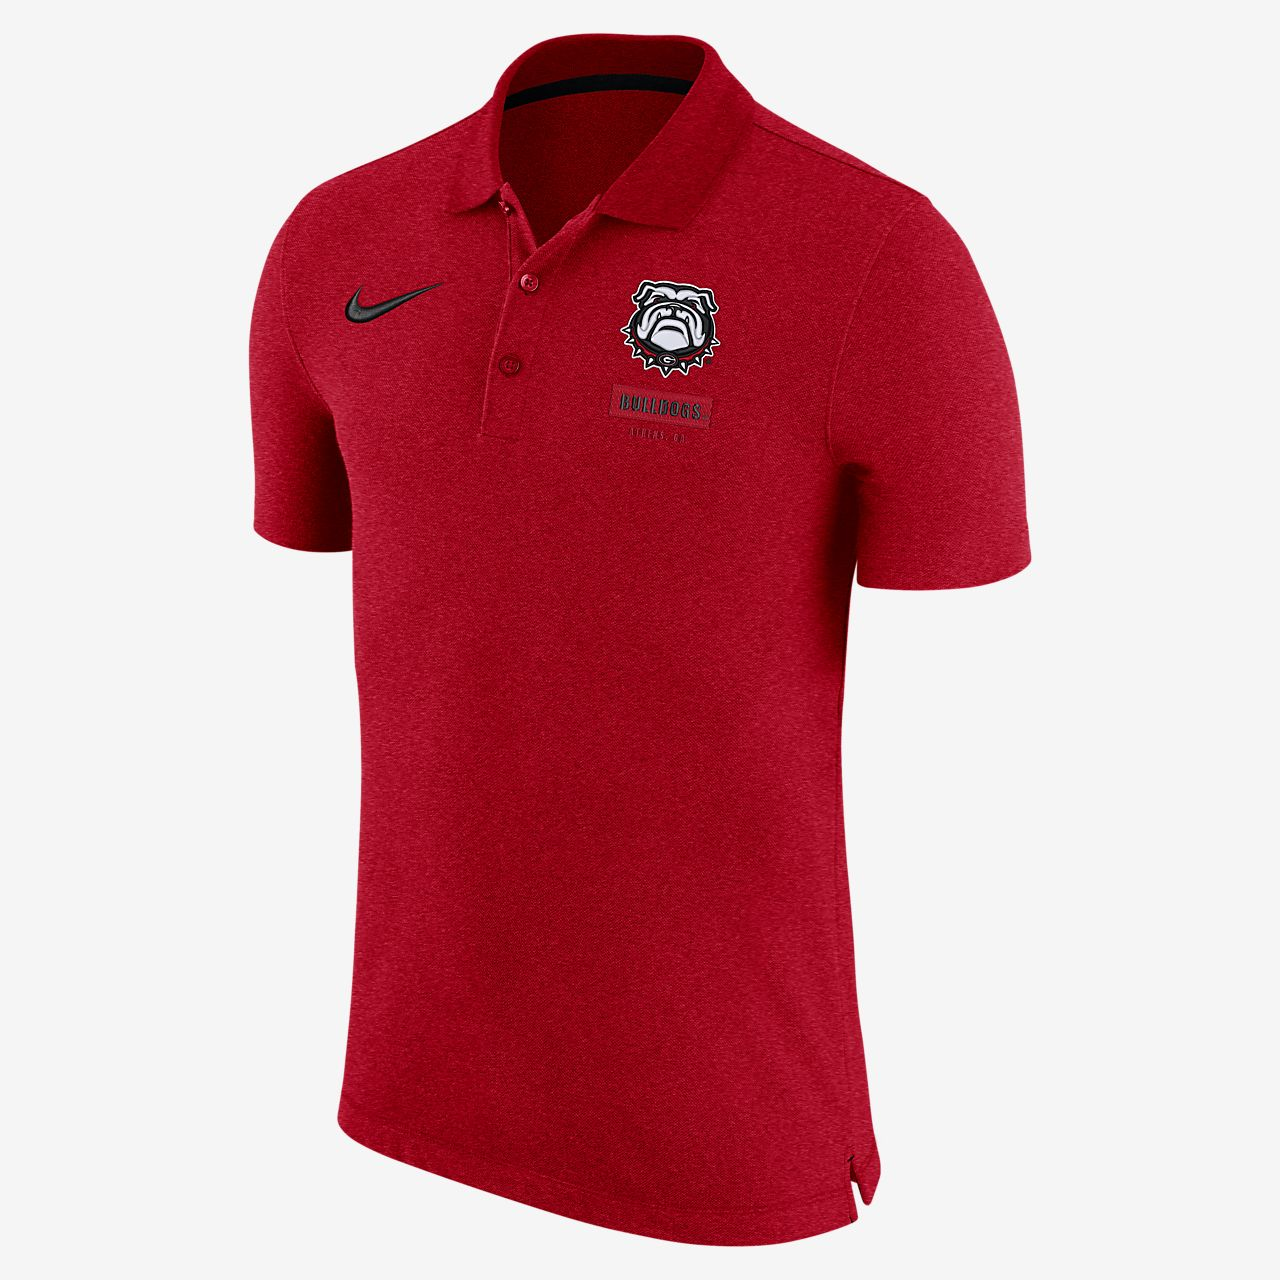 Nike College (Georgia) Men's Polo